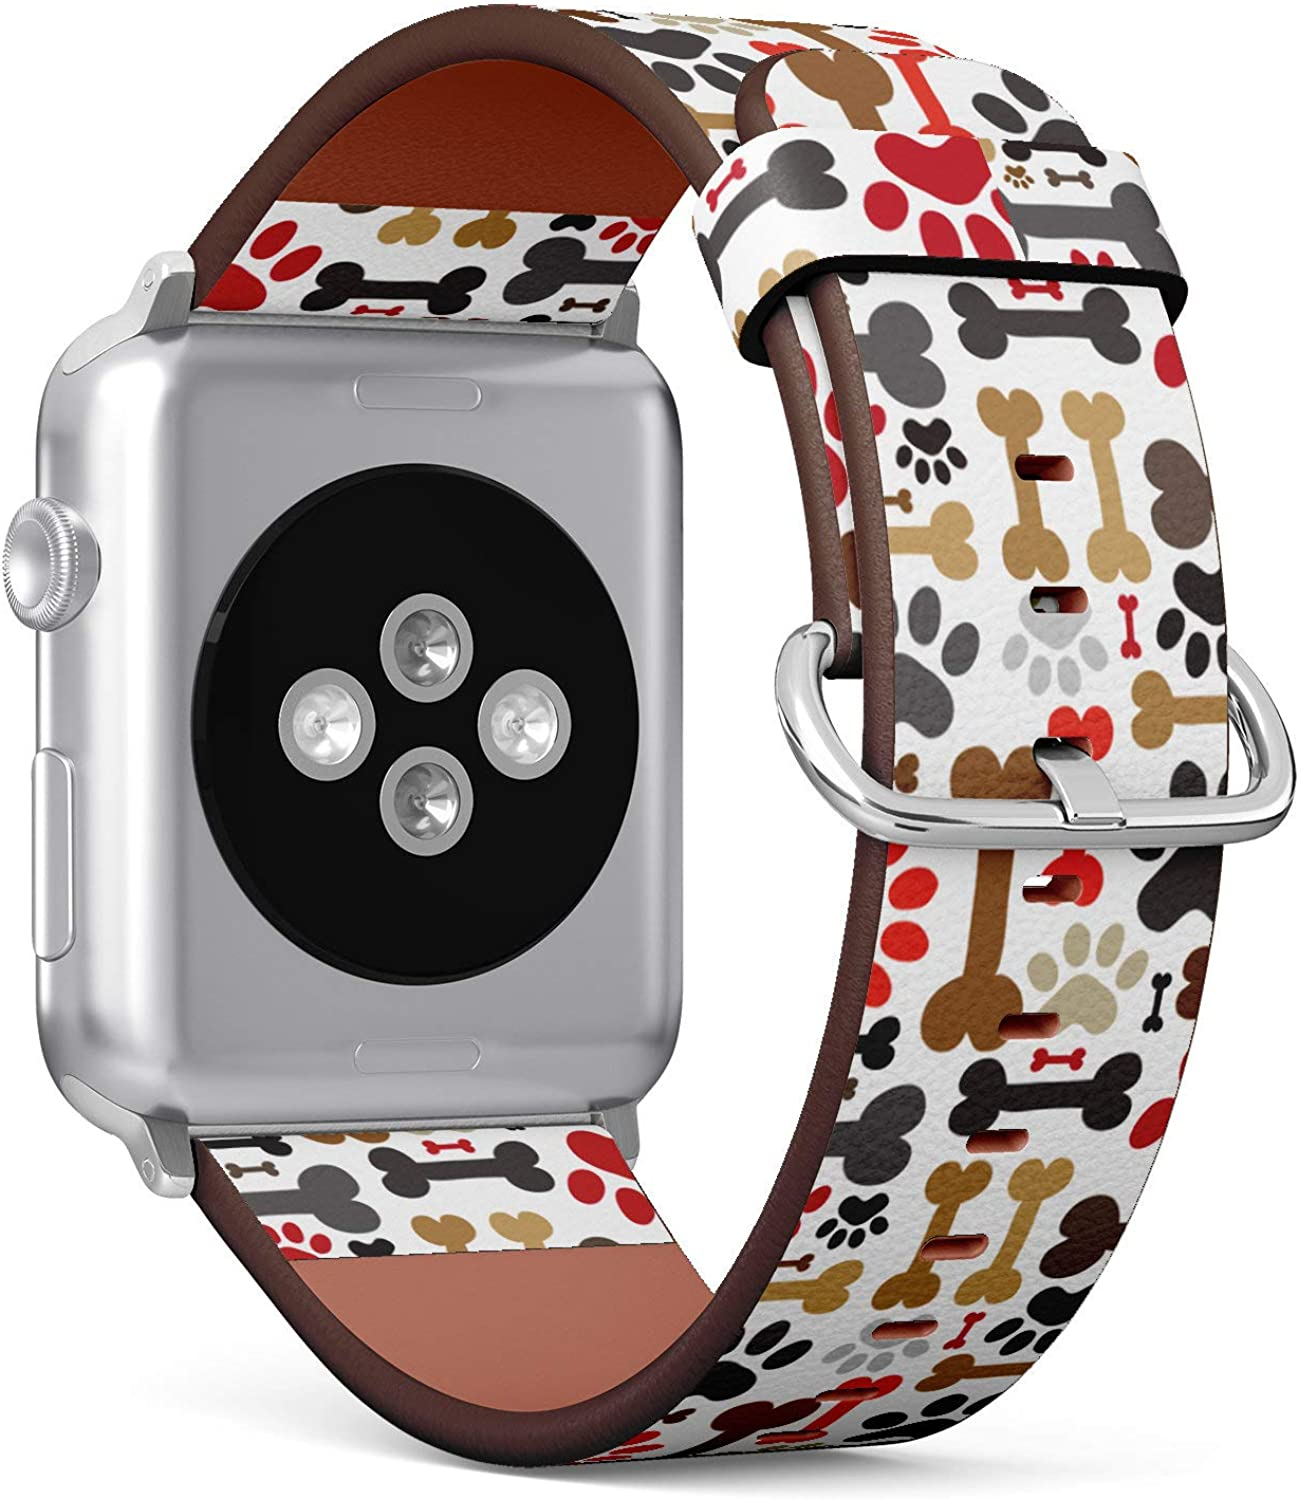 (Cute Pattern of Dogs Paws and Bones) Patterned Leather Wristband Strap Compatible with Apple Watch Series 4/3/2/1 gen,Replacement of iWatch 42mm / 44mm Bands